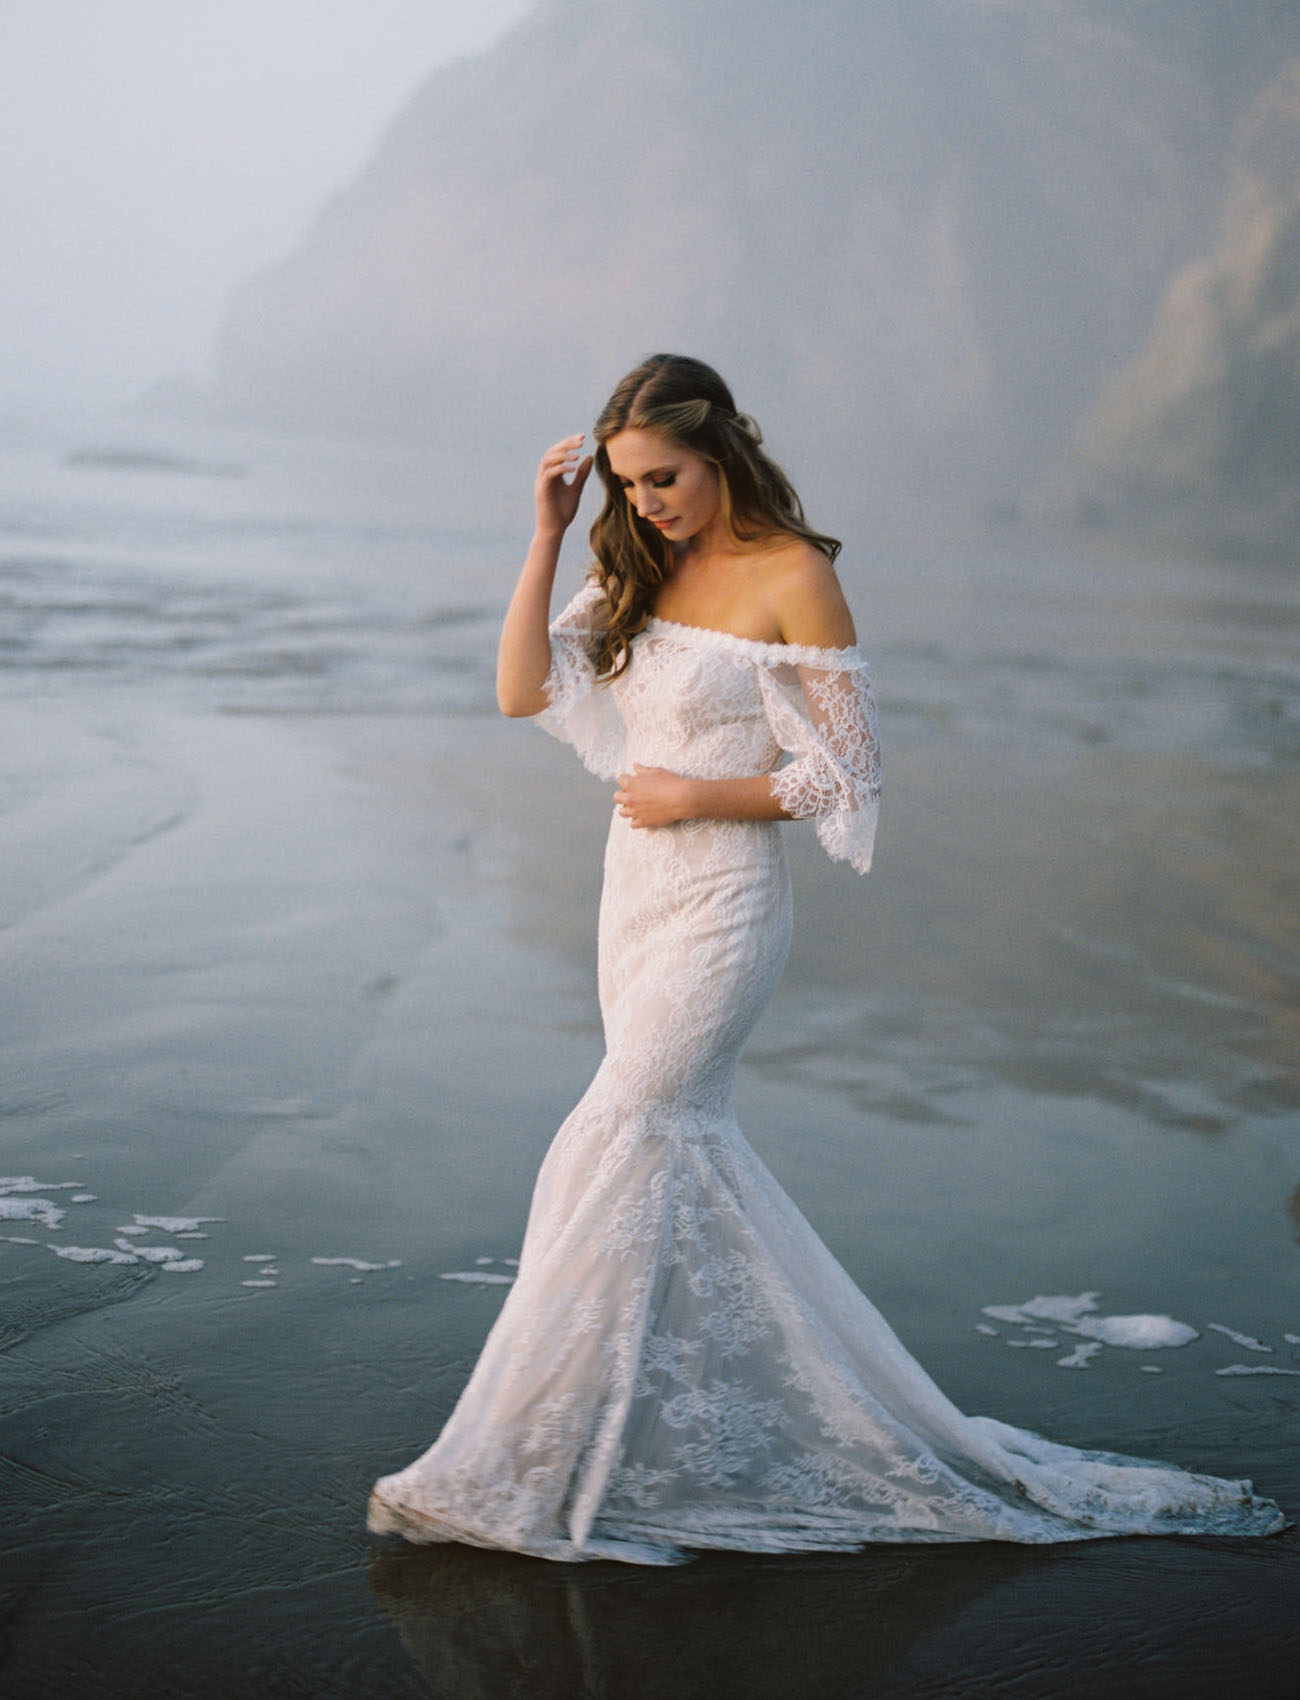 Allure Bridals: Boho Wedding Dresses by Wilderly Bride